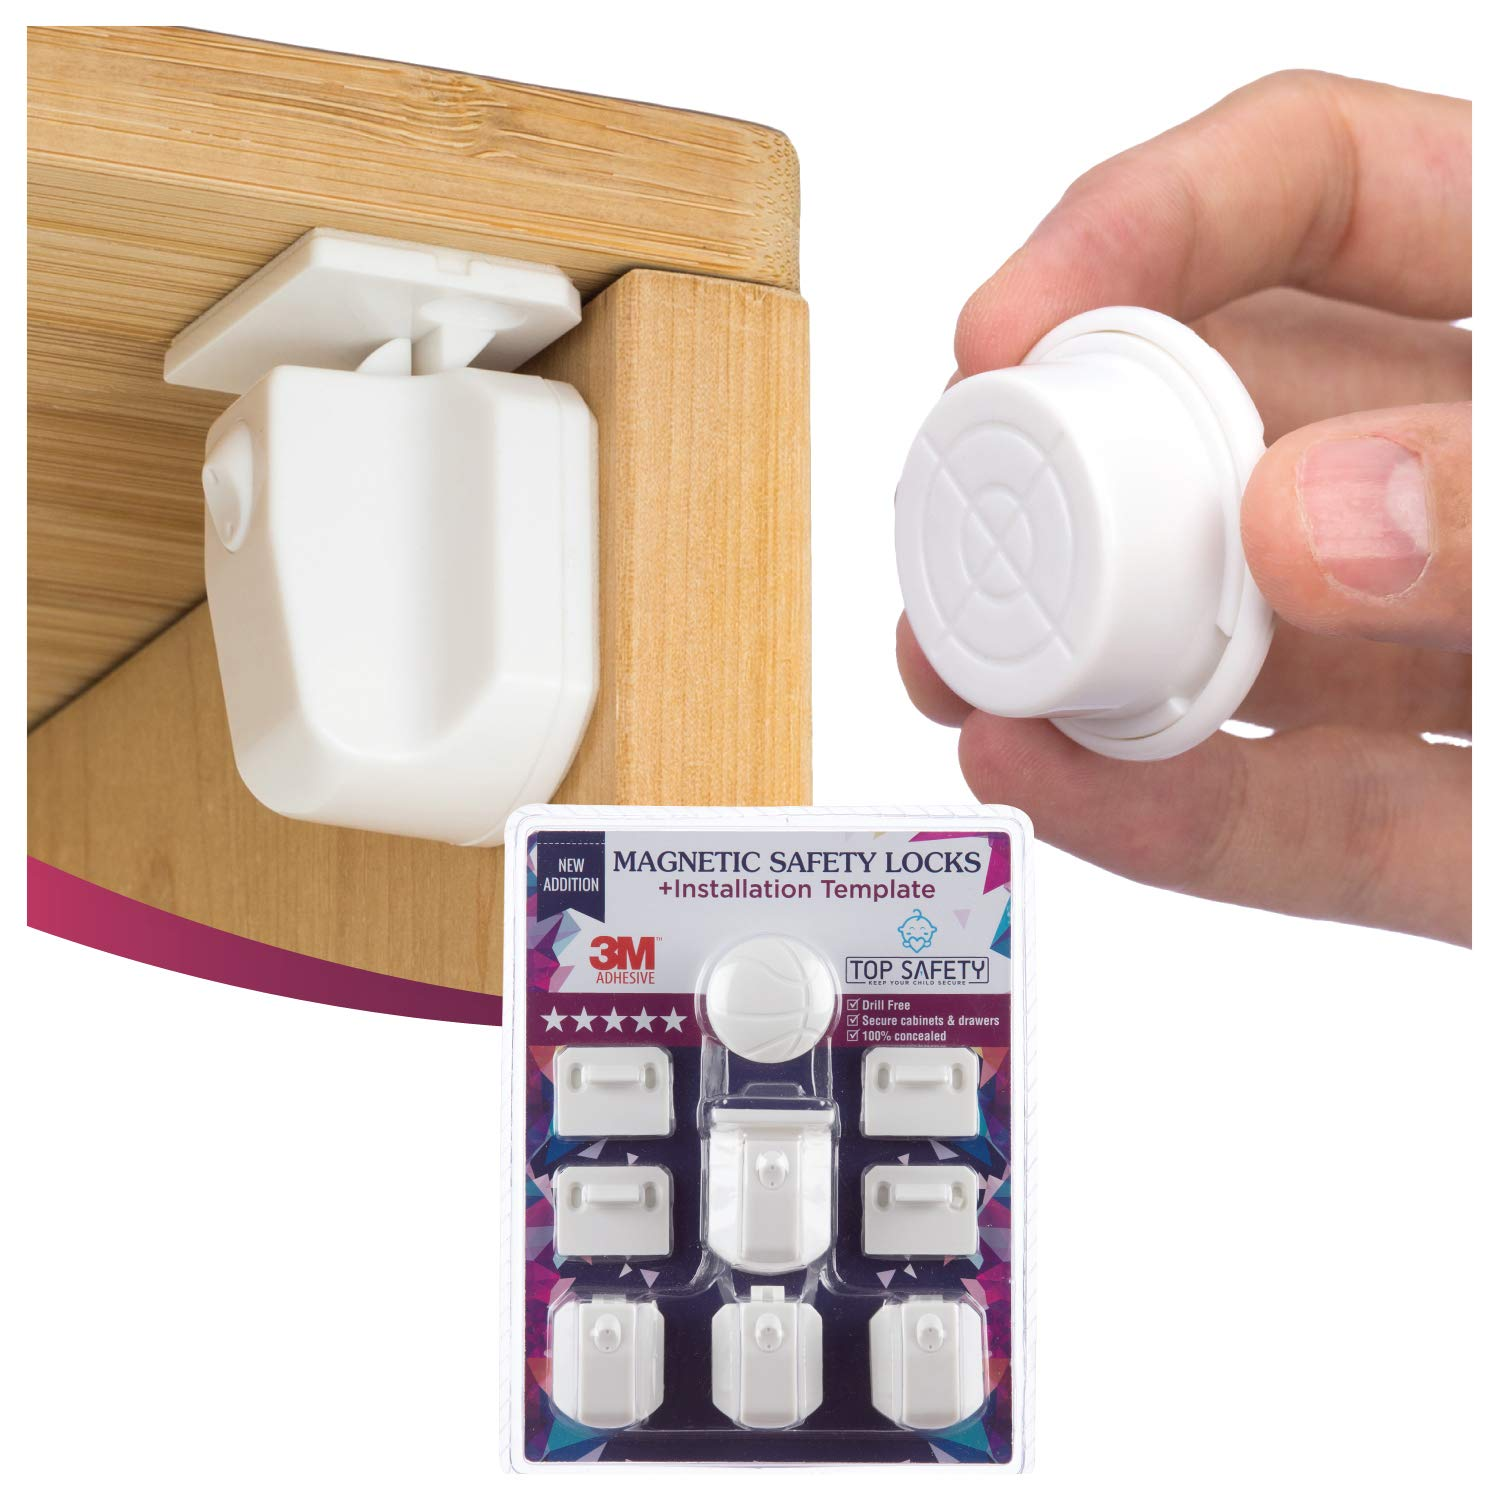 Magnetic Cabinet Locks Child Safety Adhesive a Key 4 Dallas Mall Bargain sale 3M